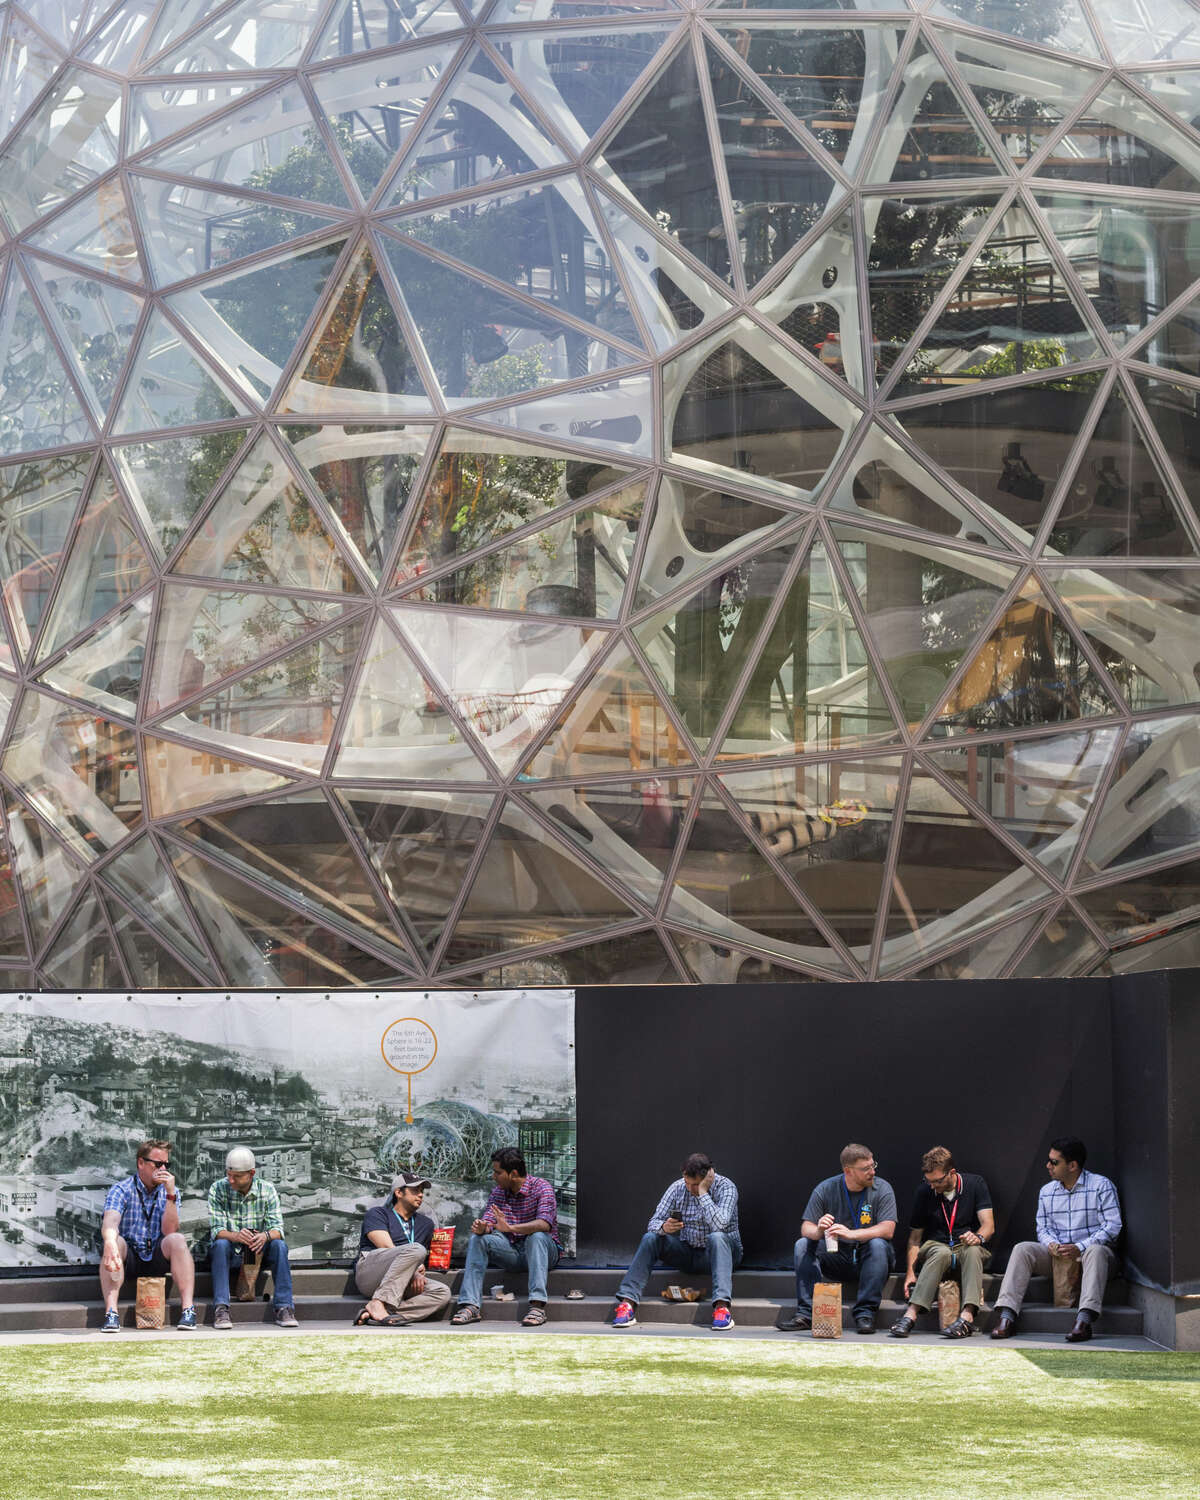 Amazonians eat lunch under the spheres on Aug. 10, 2017.